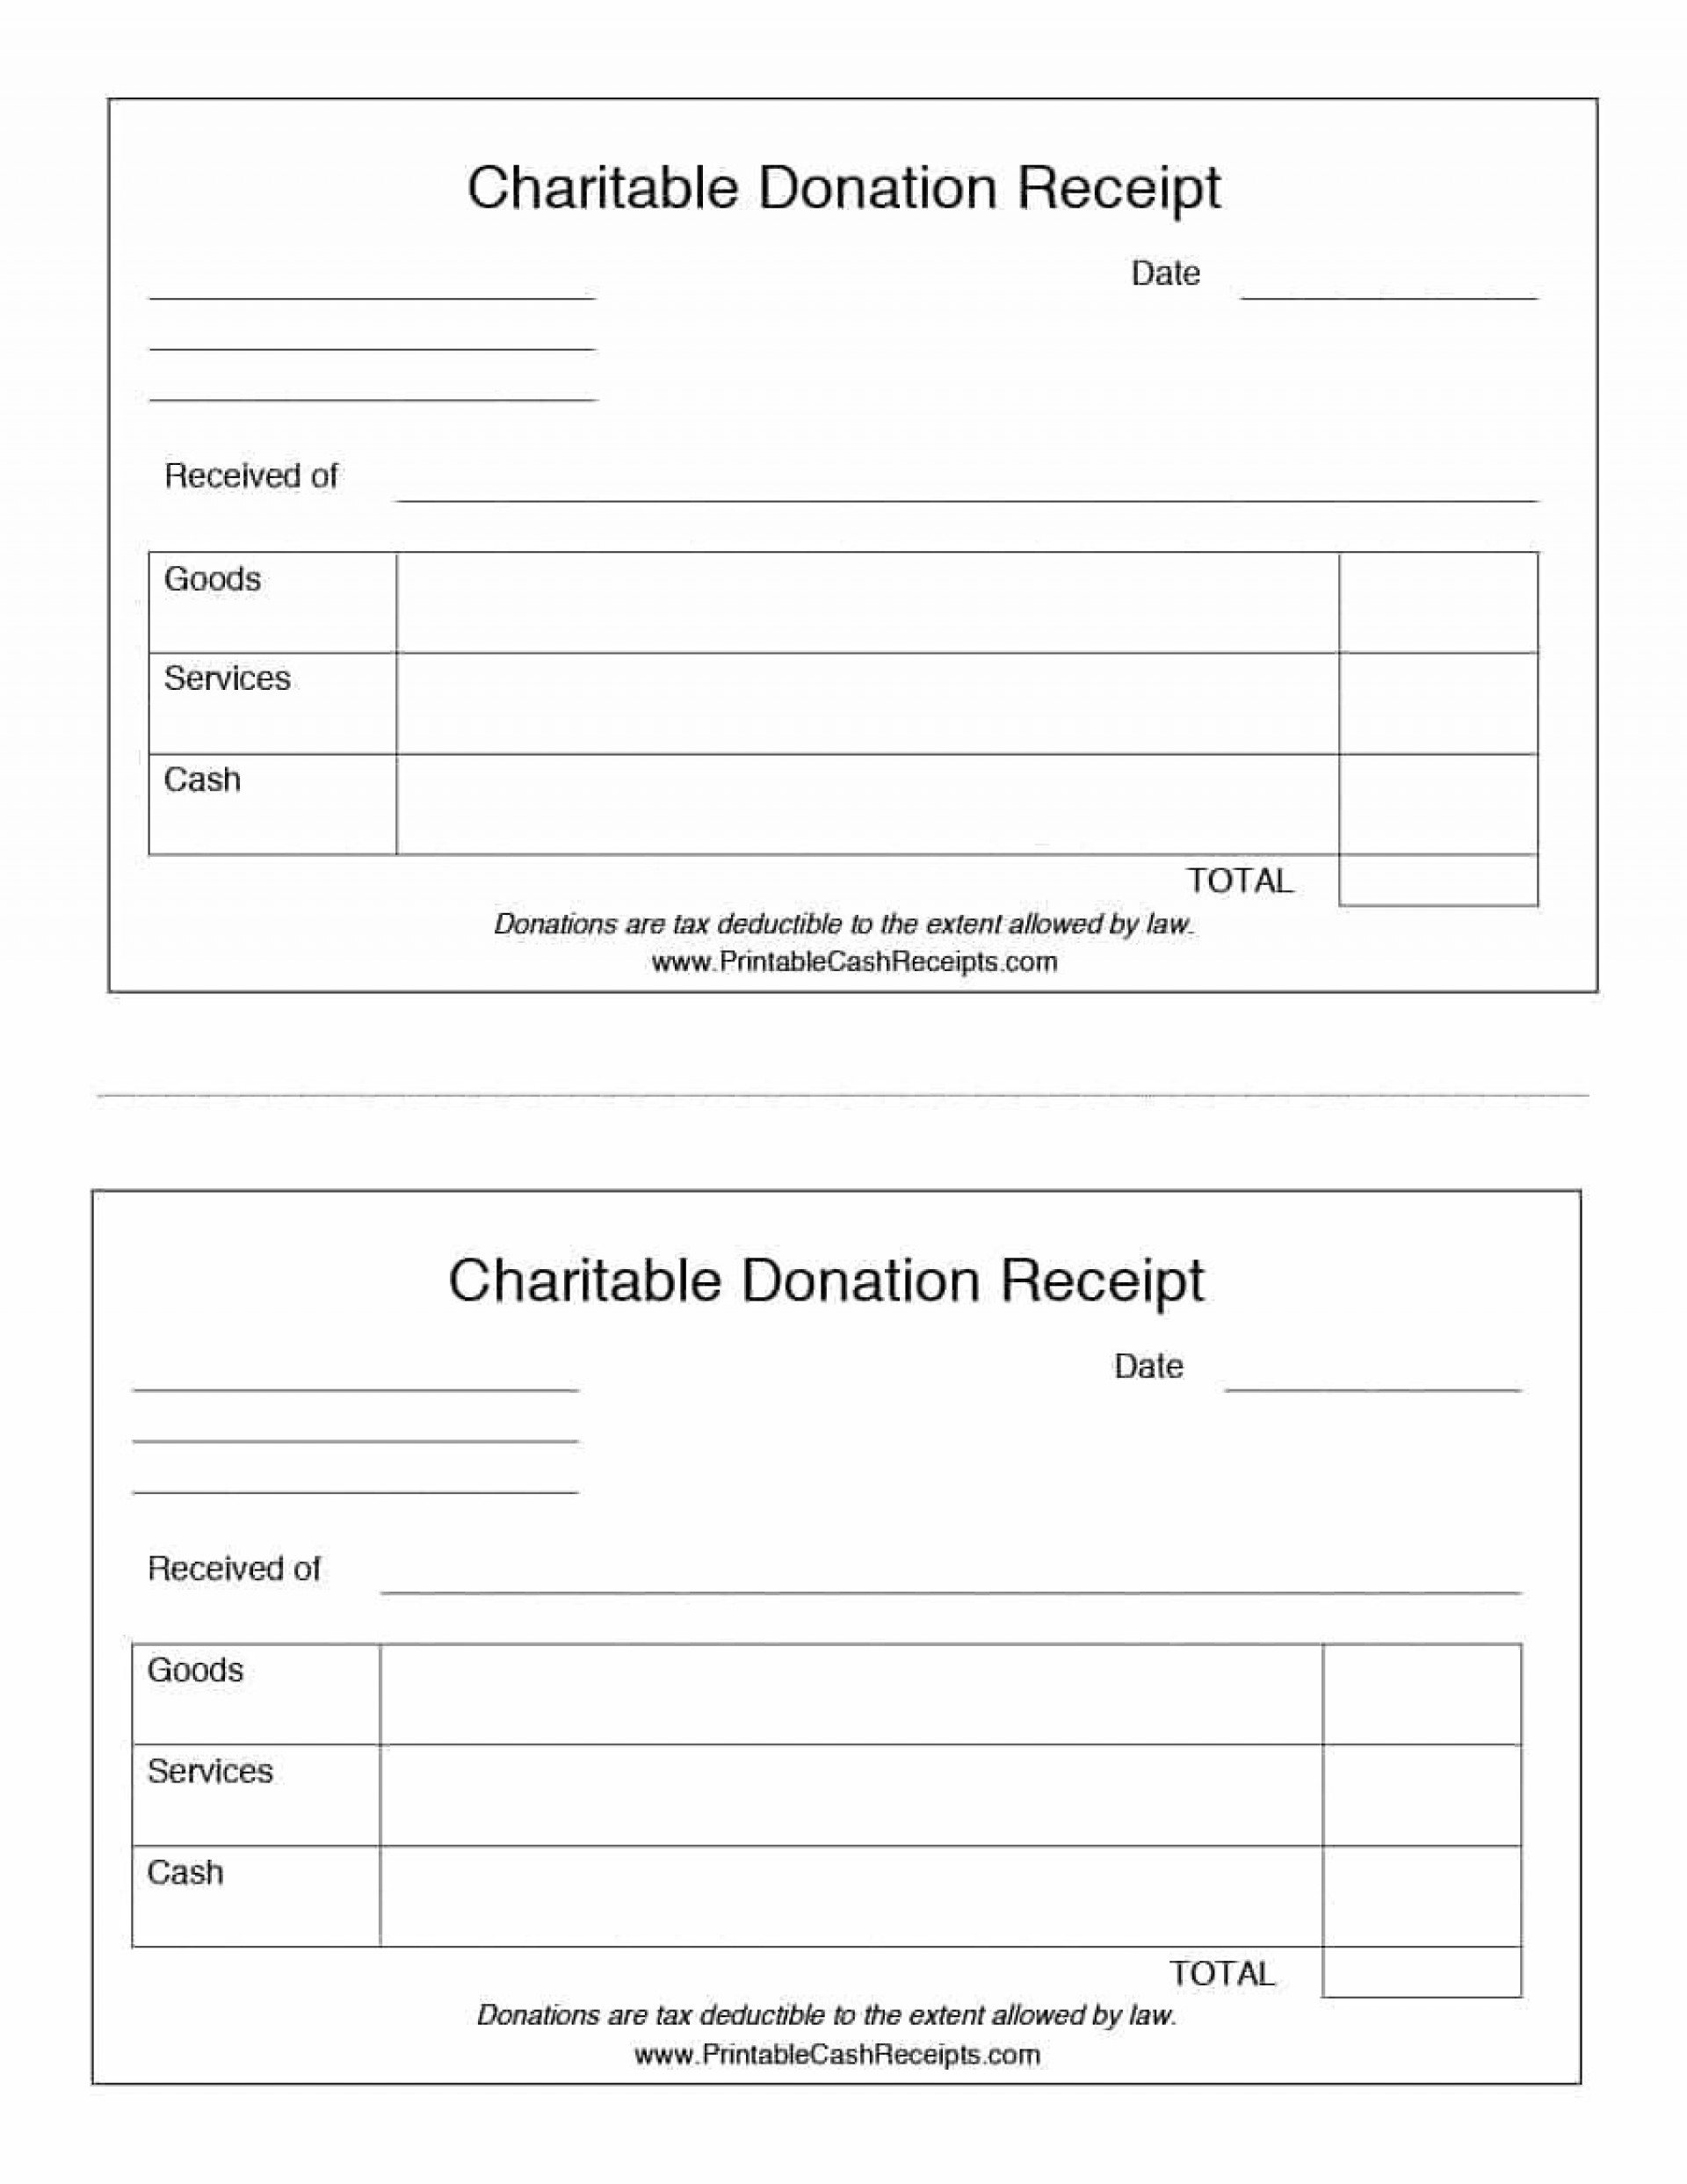 000 Shocking Charitable Tax Receipt Template Sample  Donation1920